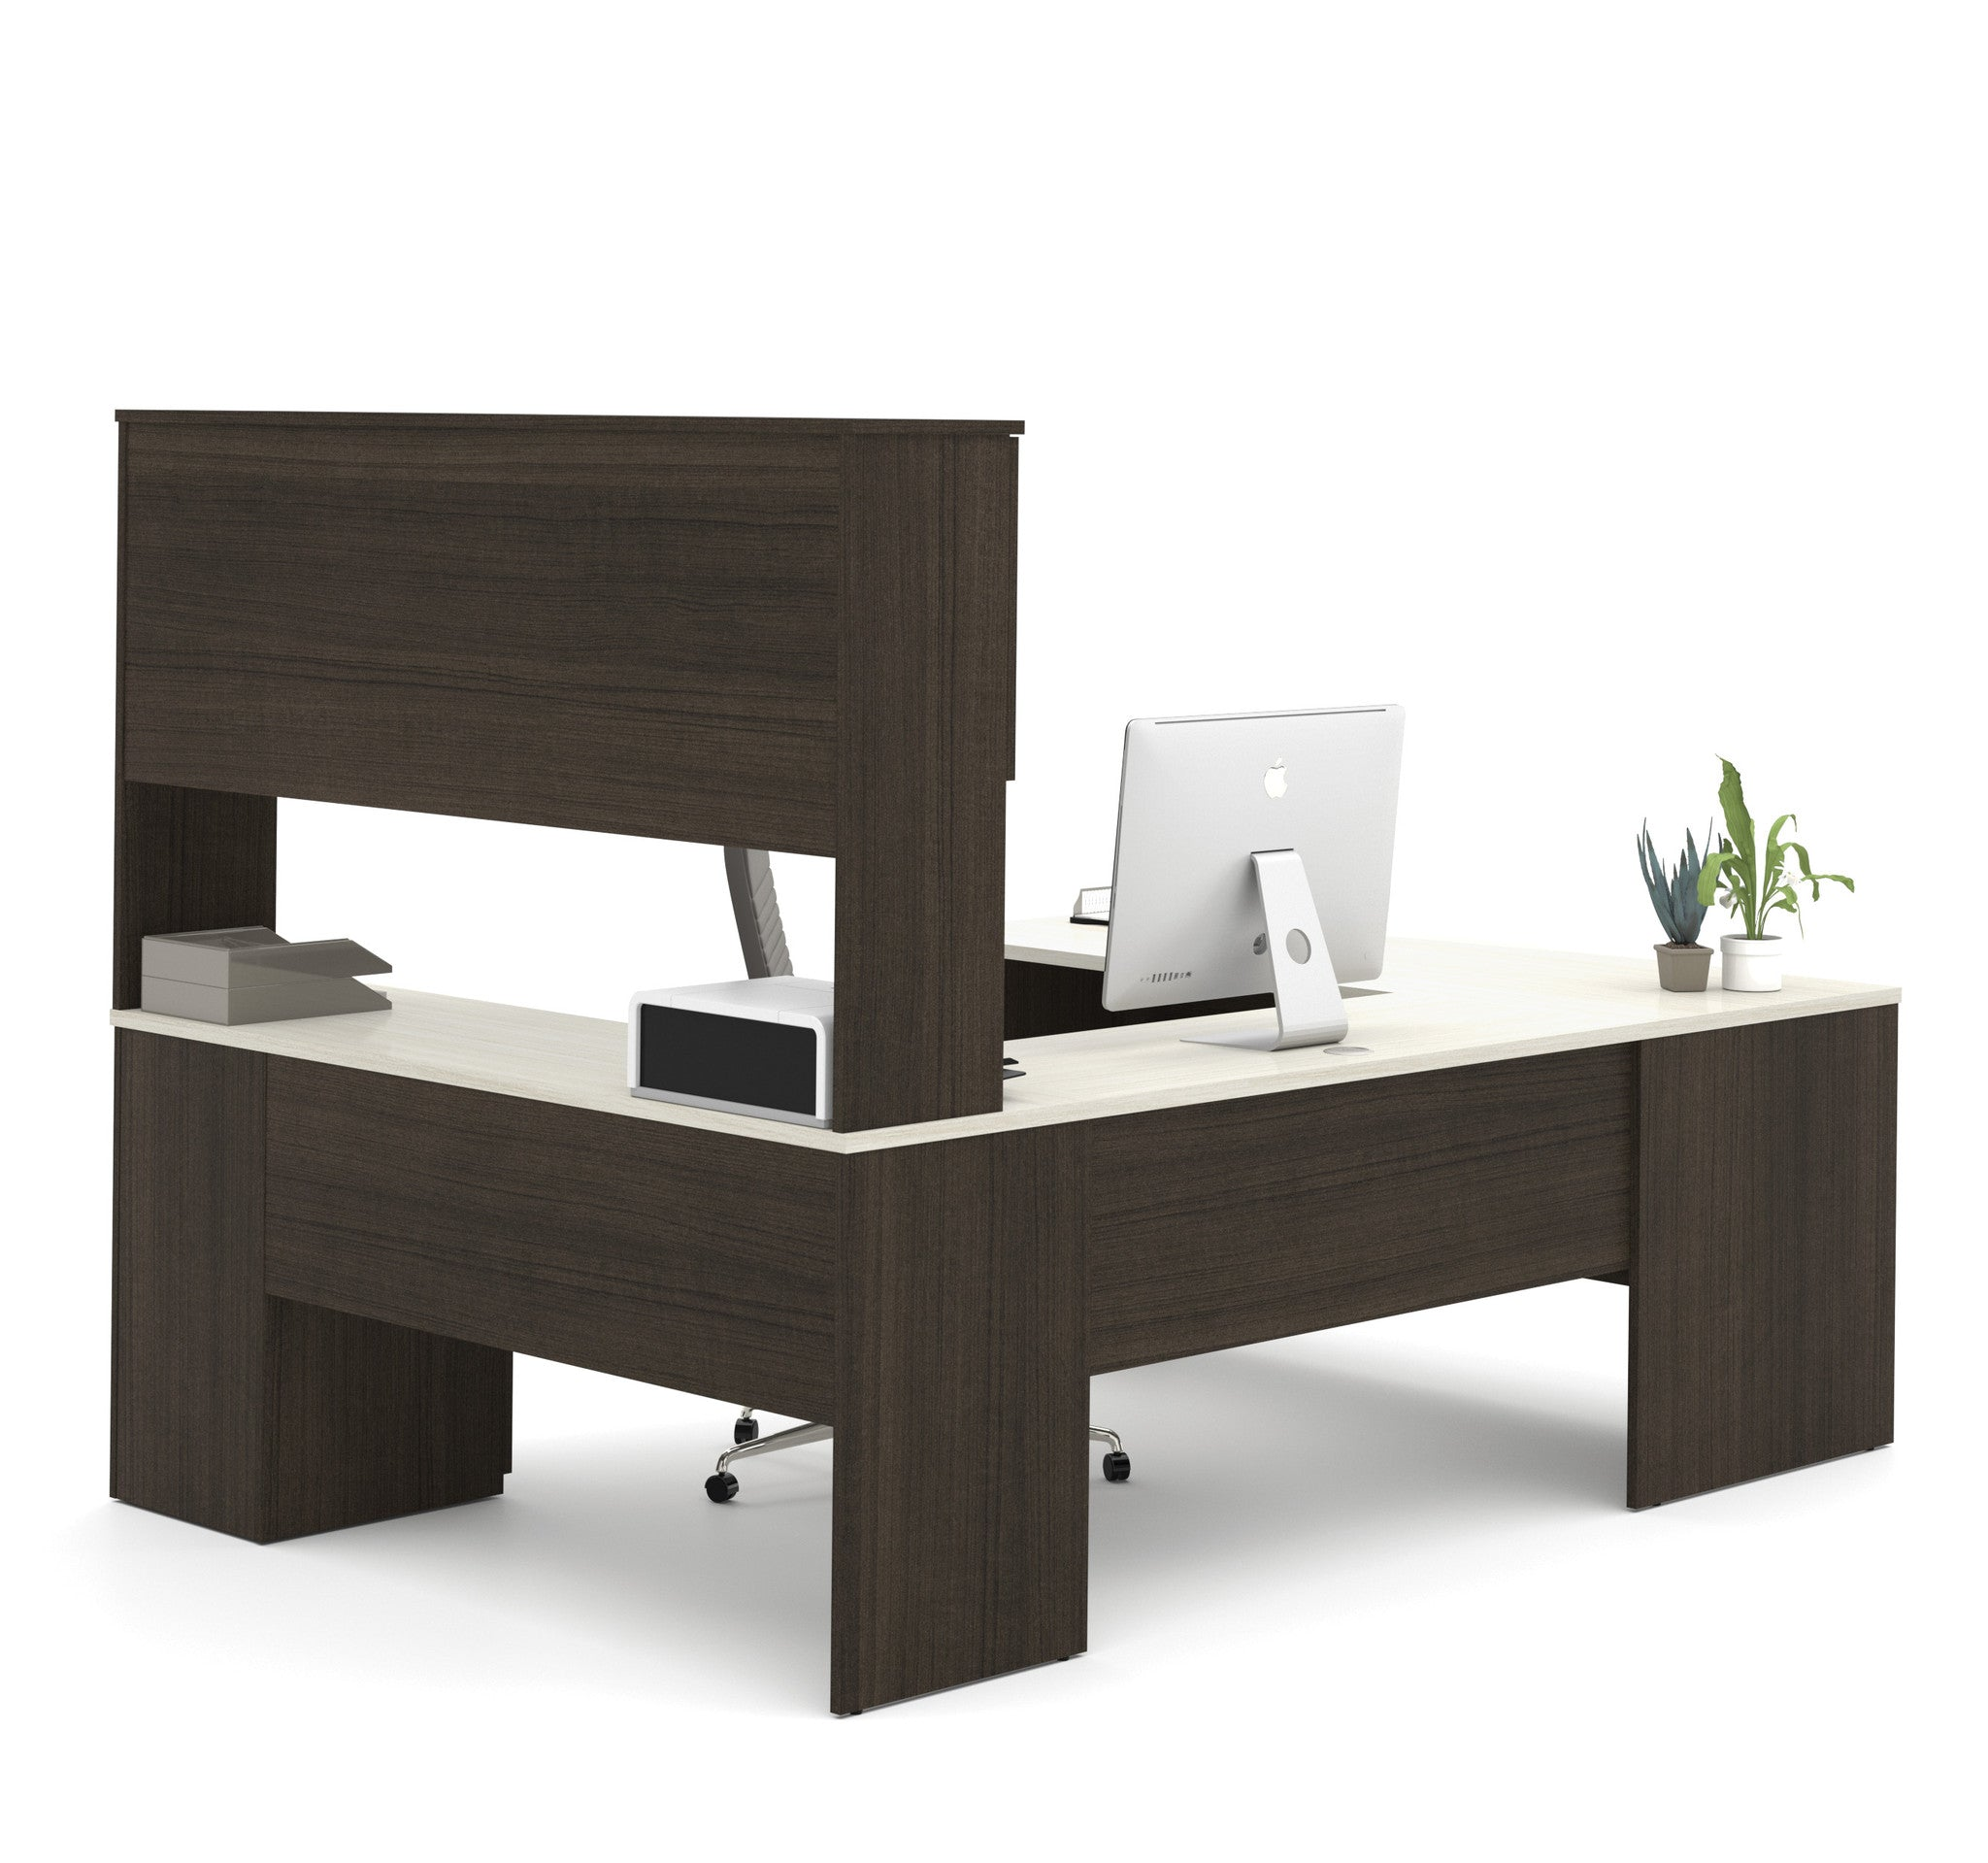 Modern Office Desk: Dark Chocolate & White Modern U-shaped Office Desk